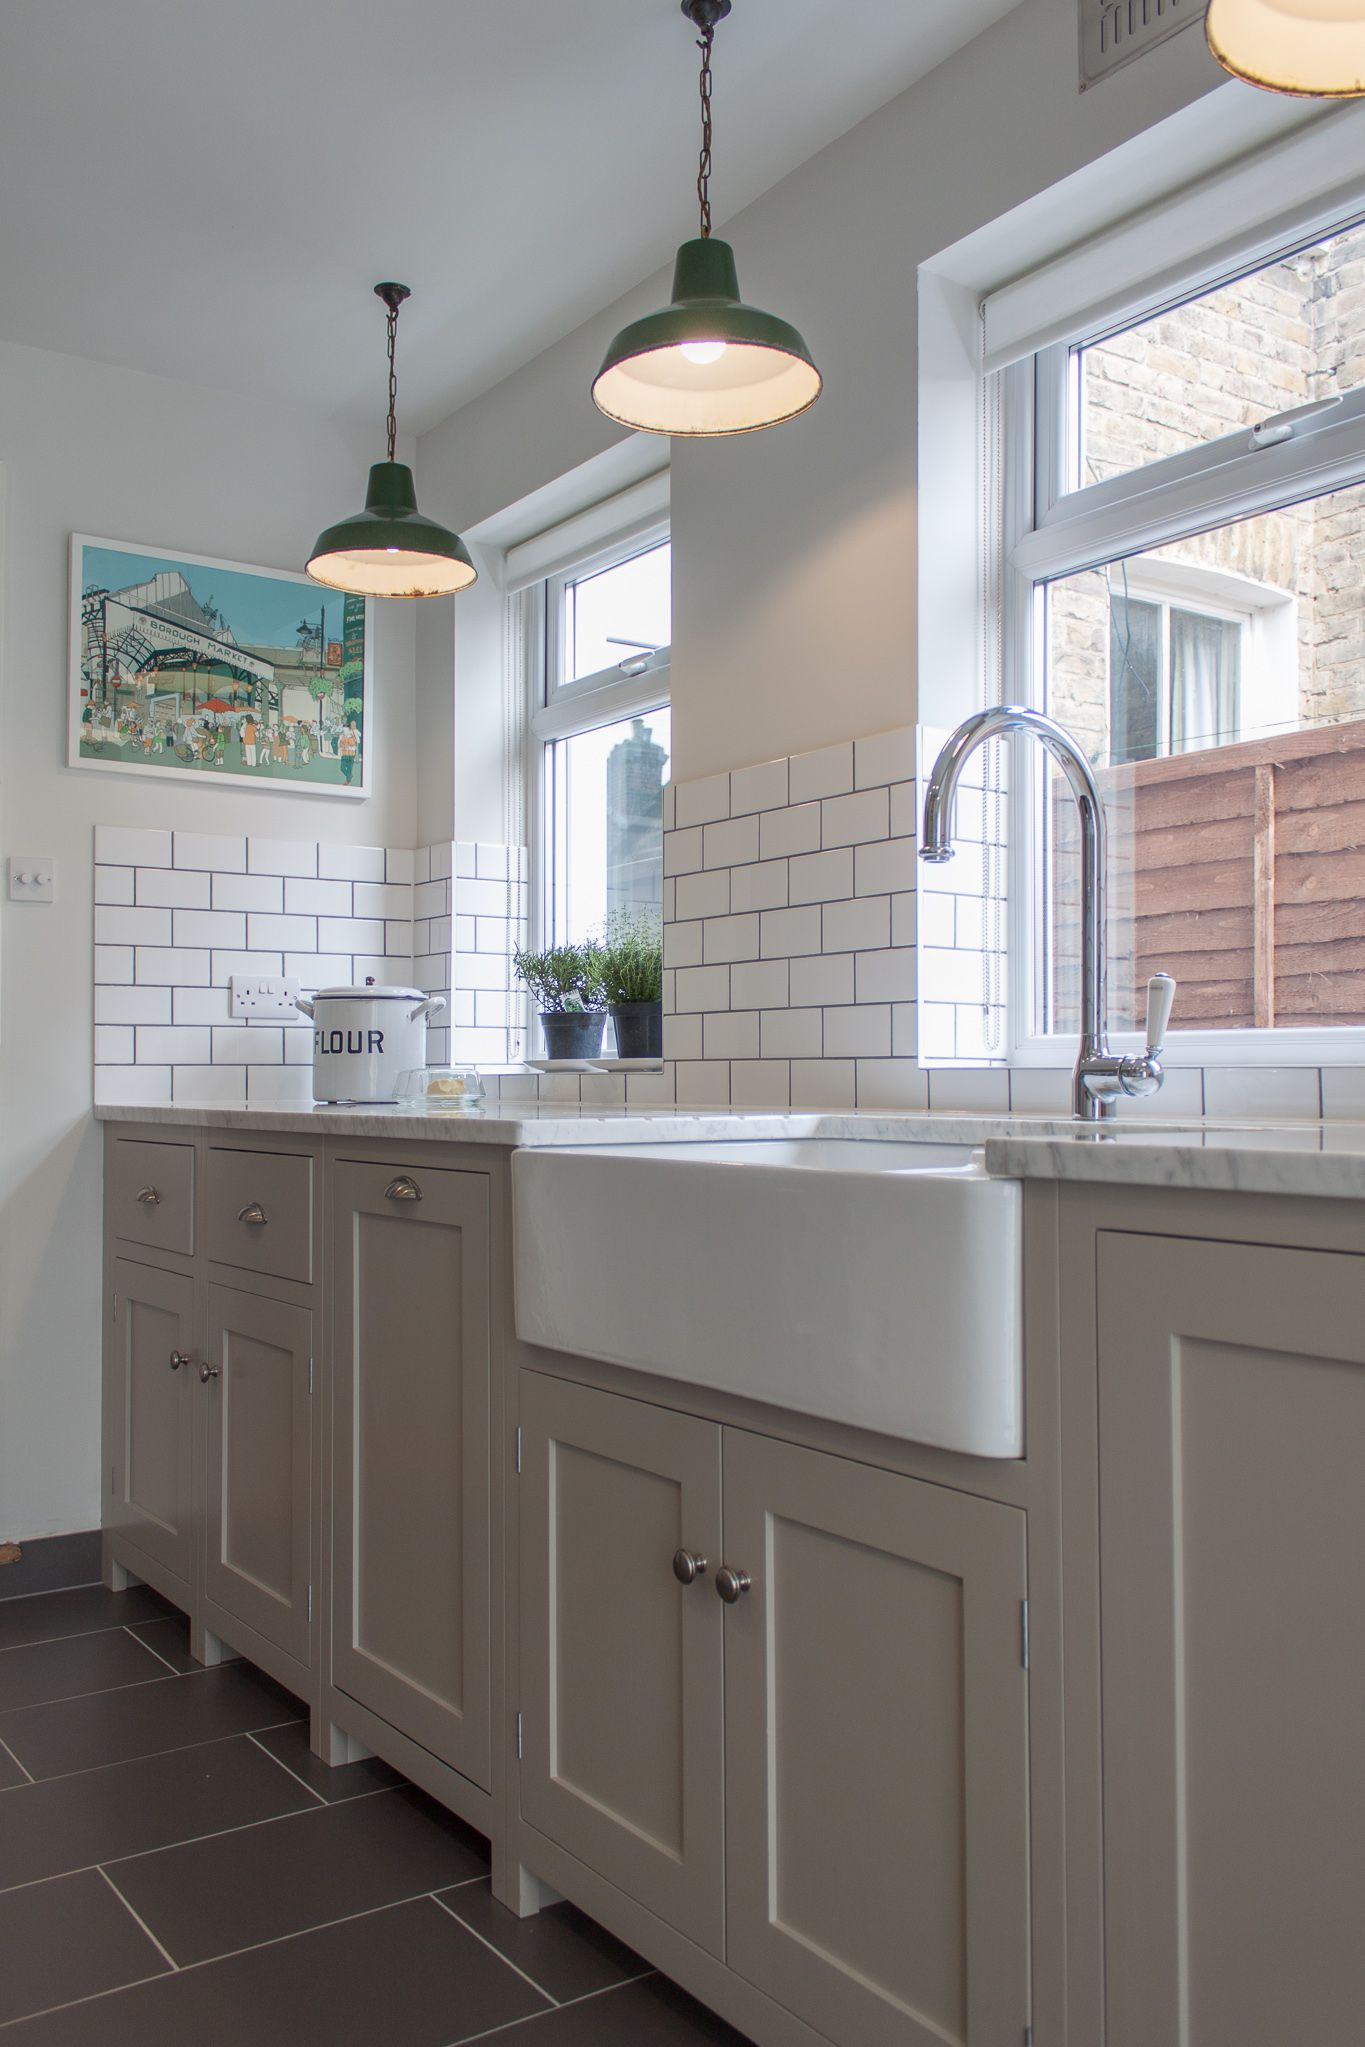 Wide Belfast Sink Putty Units White Worktop Vintage Pendant Lighting Kitchens Pinterest